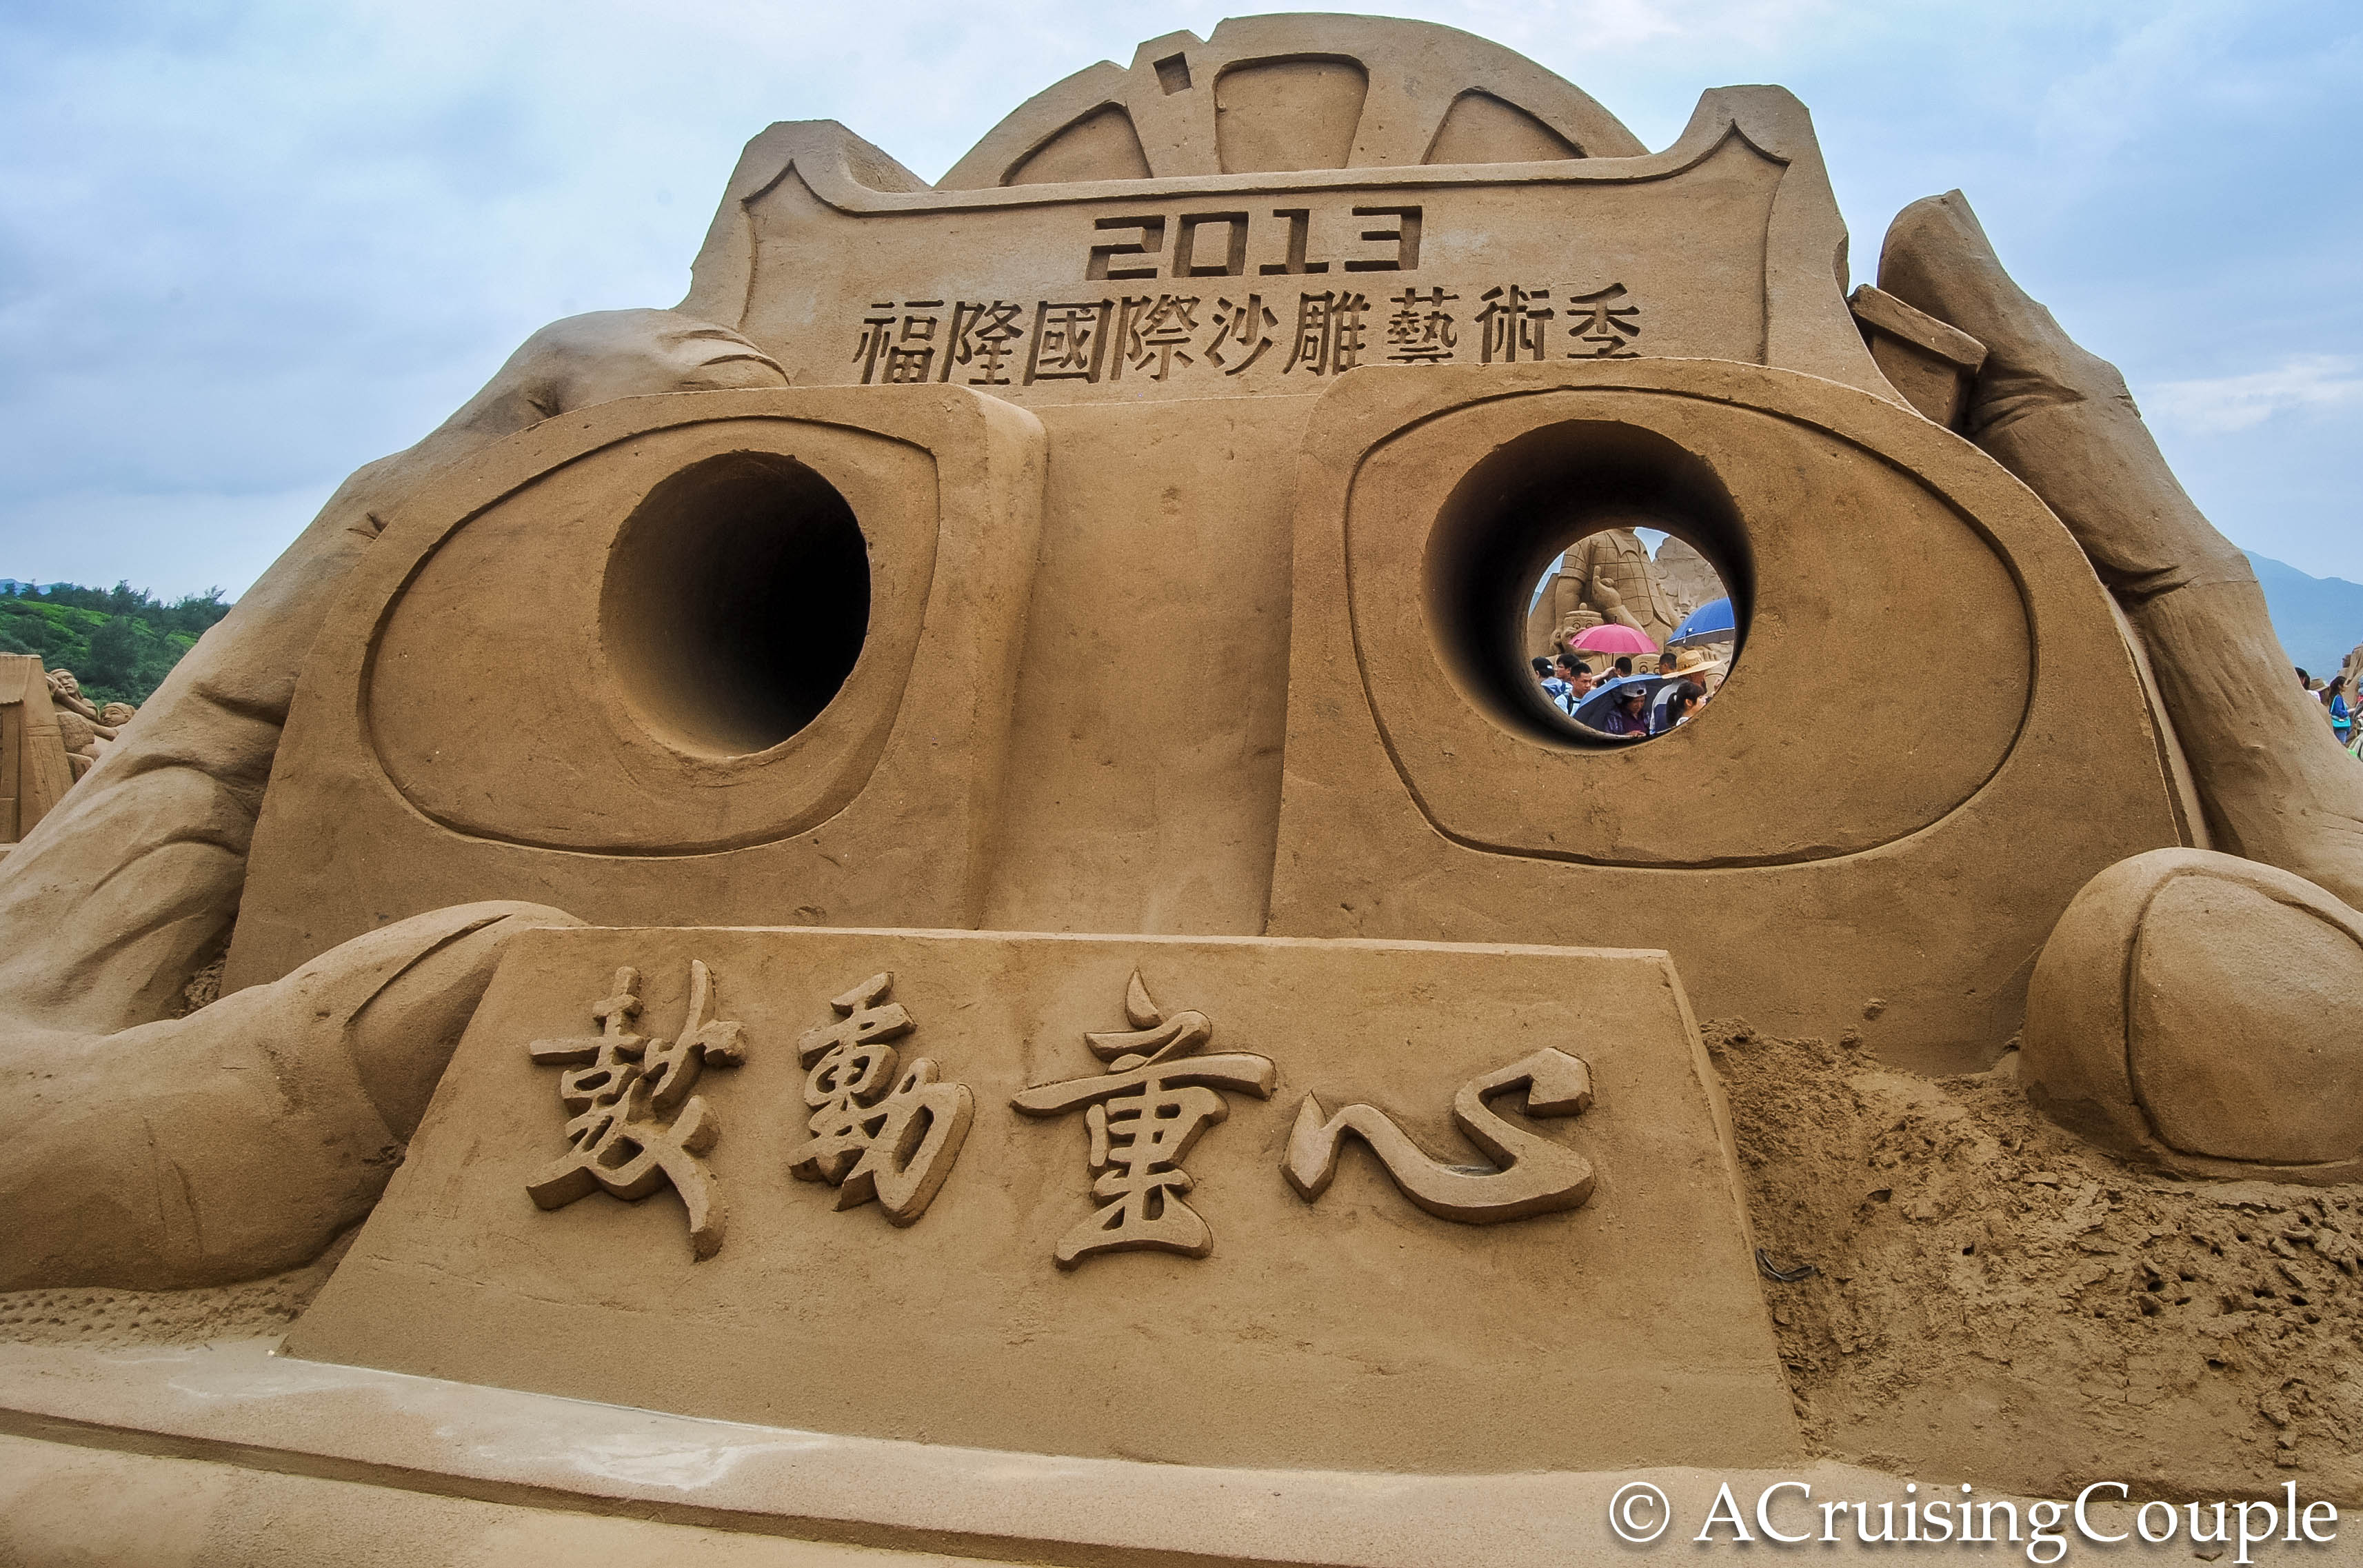 Fulong Taiwan Sand Sculpture Festival A Cruising Couple - The 10 coolest sandcastle competitions in the world